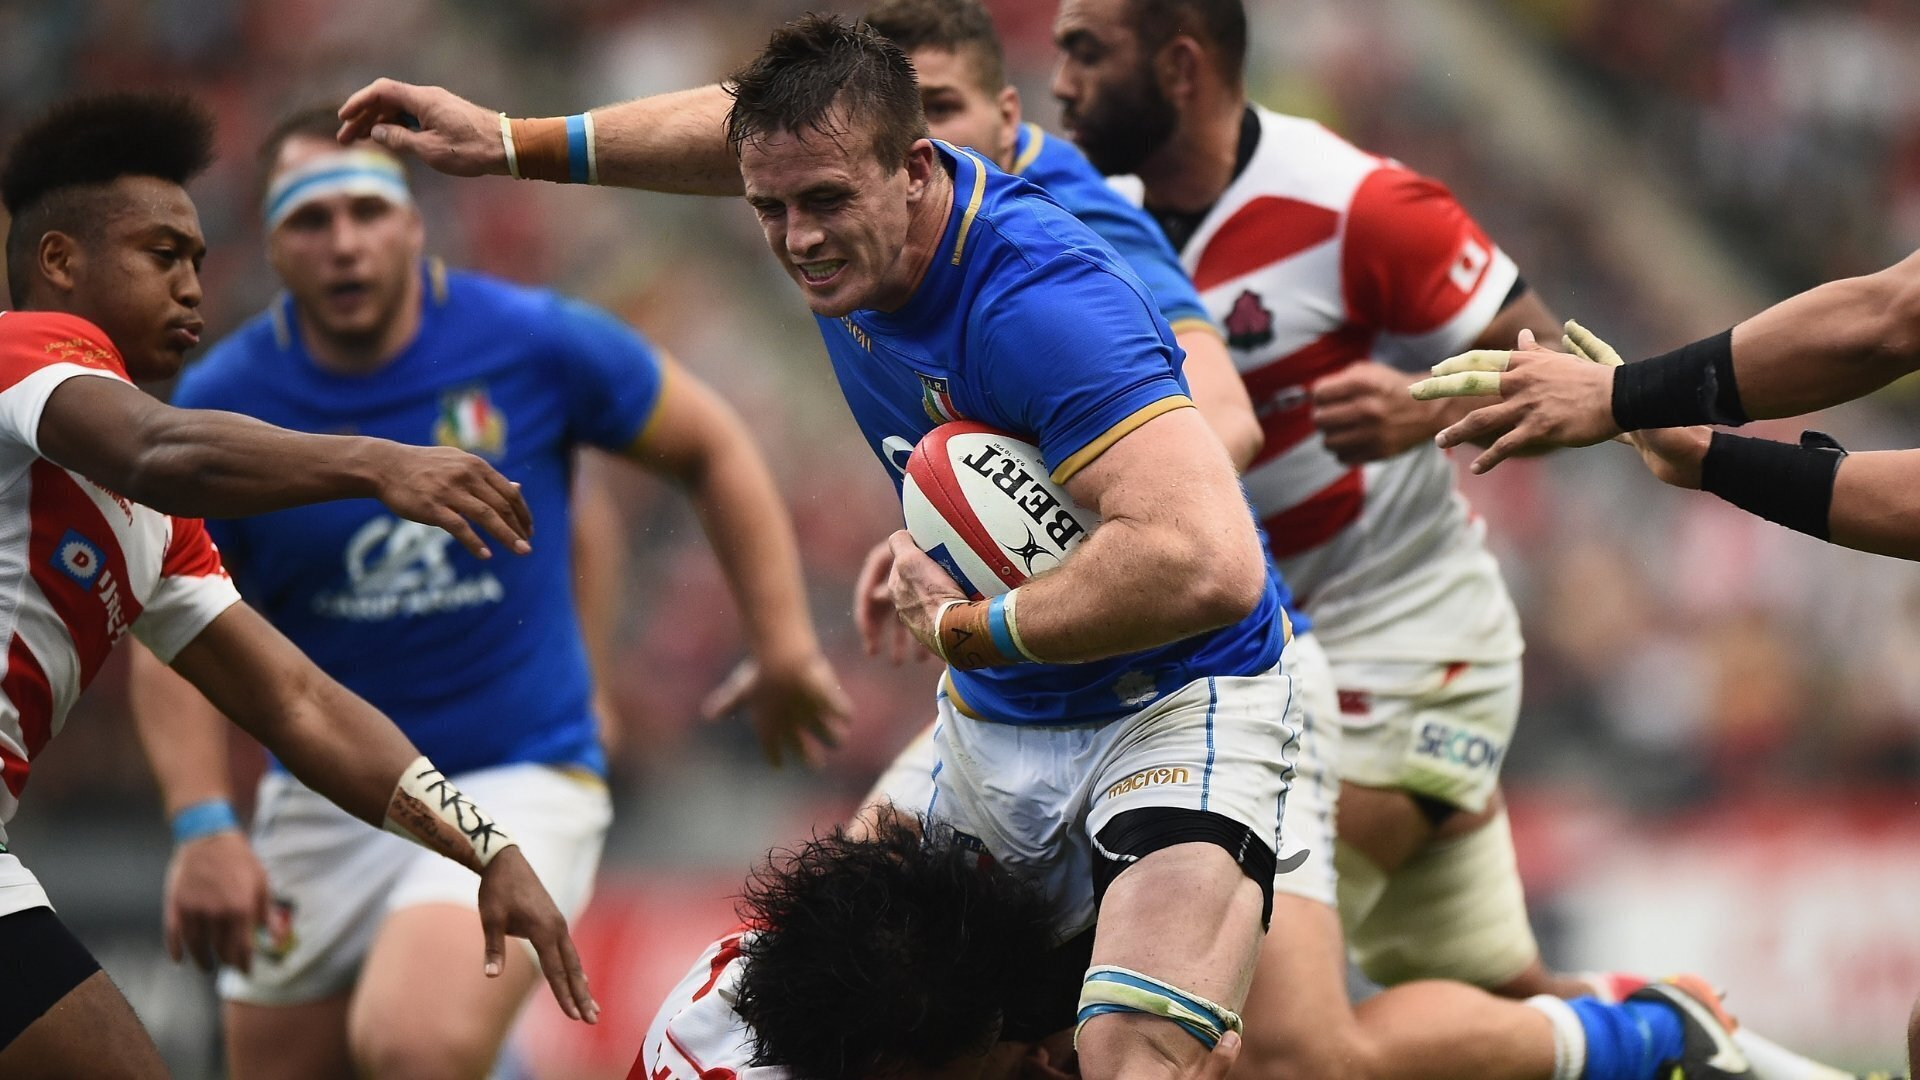 SIX NATIONS 2019: Players to watch